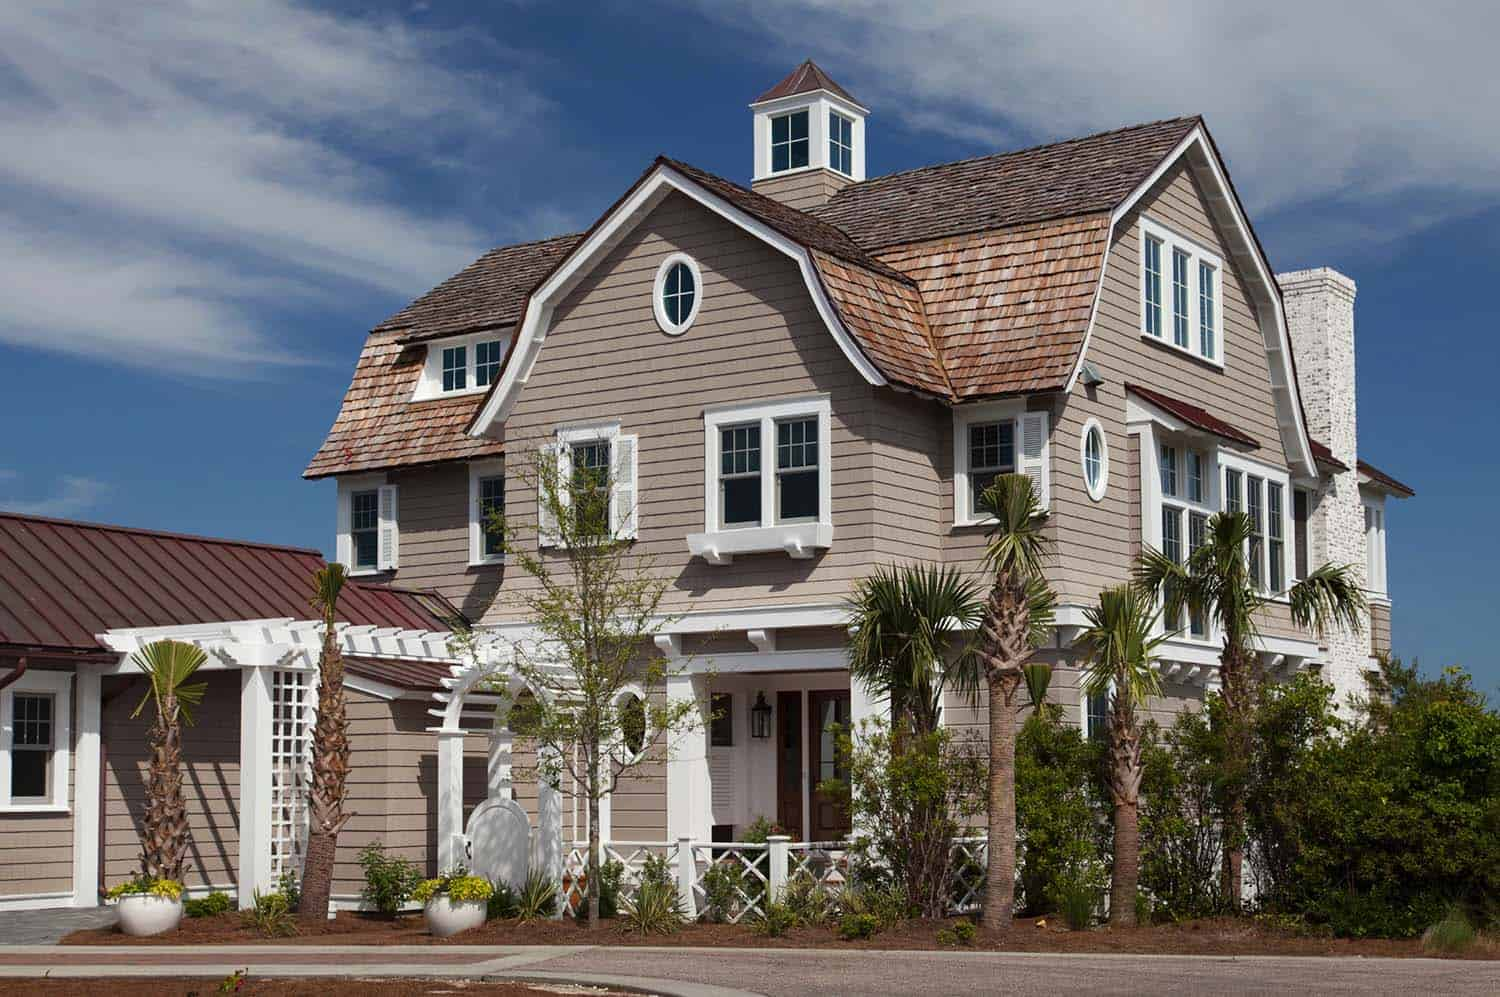 Breathtaking shingle style beach house in watersound florida for Shingle style beach house plans